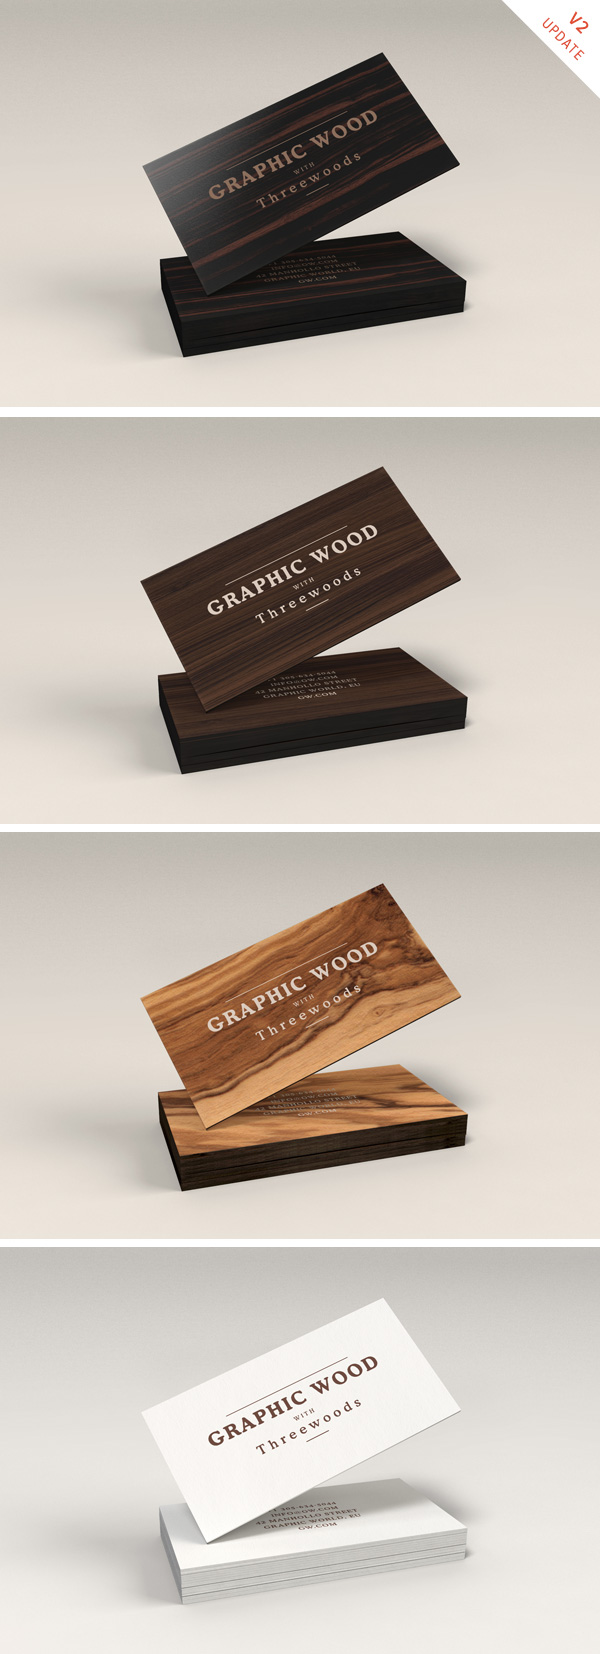 70 free psd business card mockups for great deals free psd templates wooden business cards mockup v2 600 fbccfo Choice Image